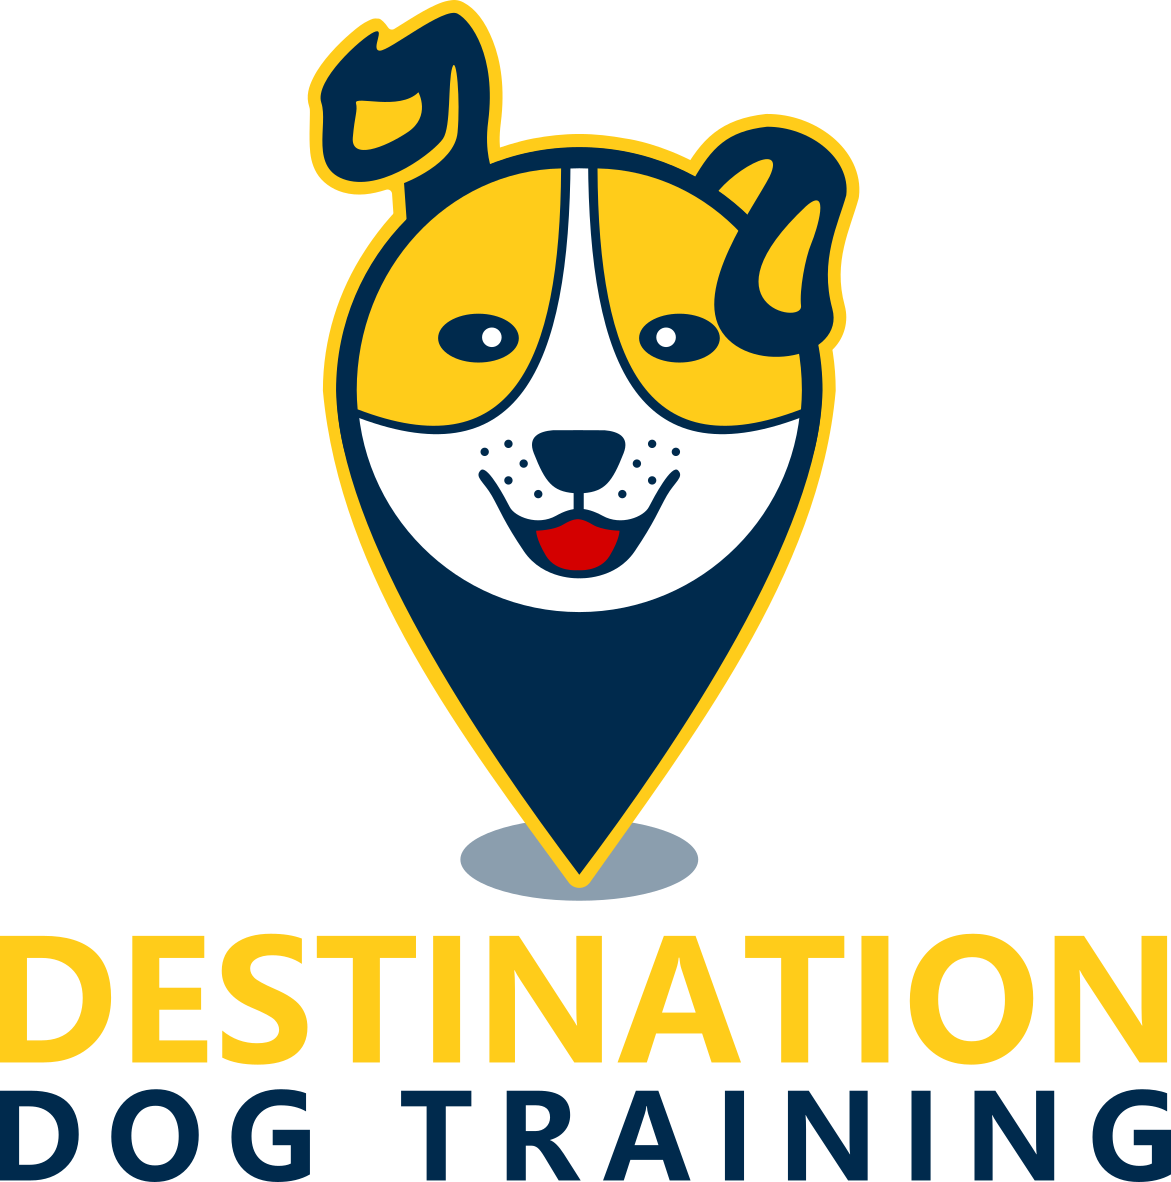 Destination Dog Training